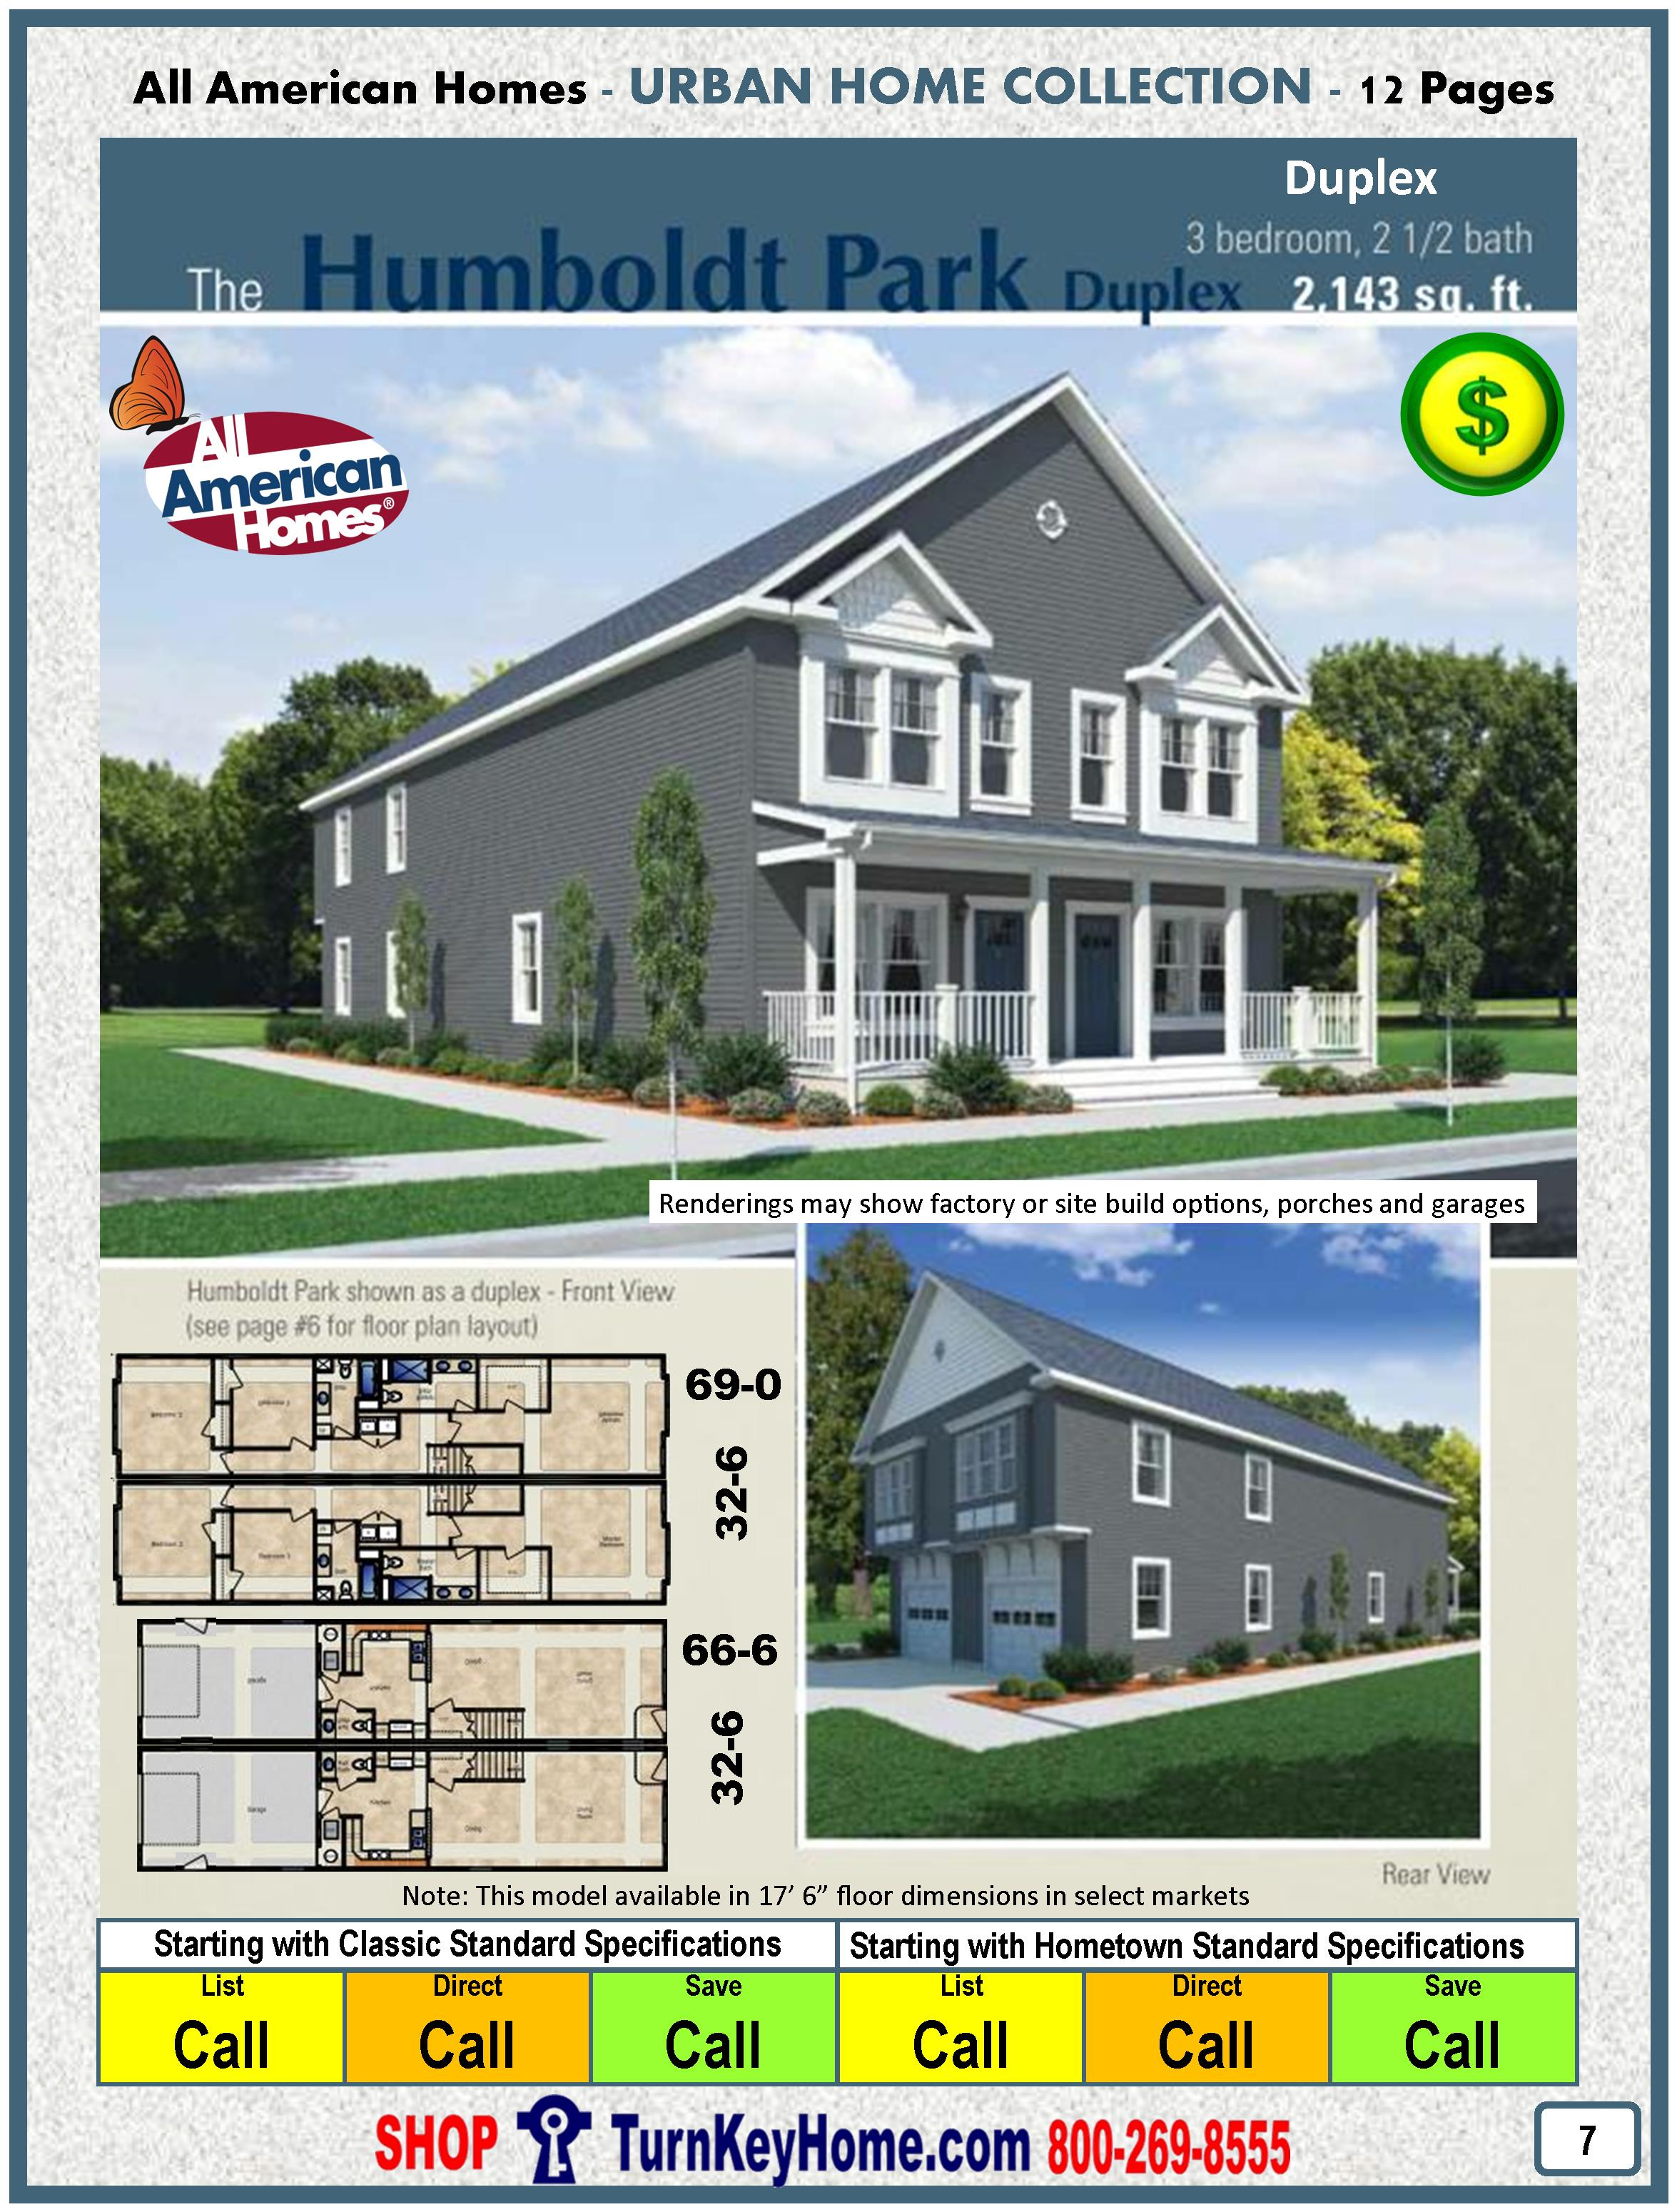 Modular home all american homes urban home humboldt park duplex plan